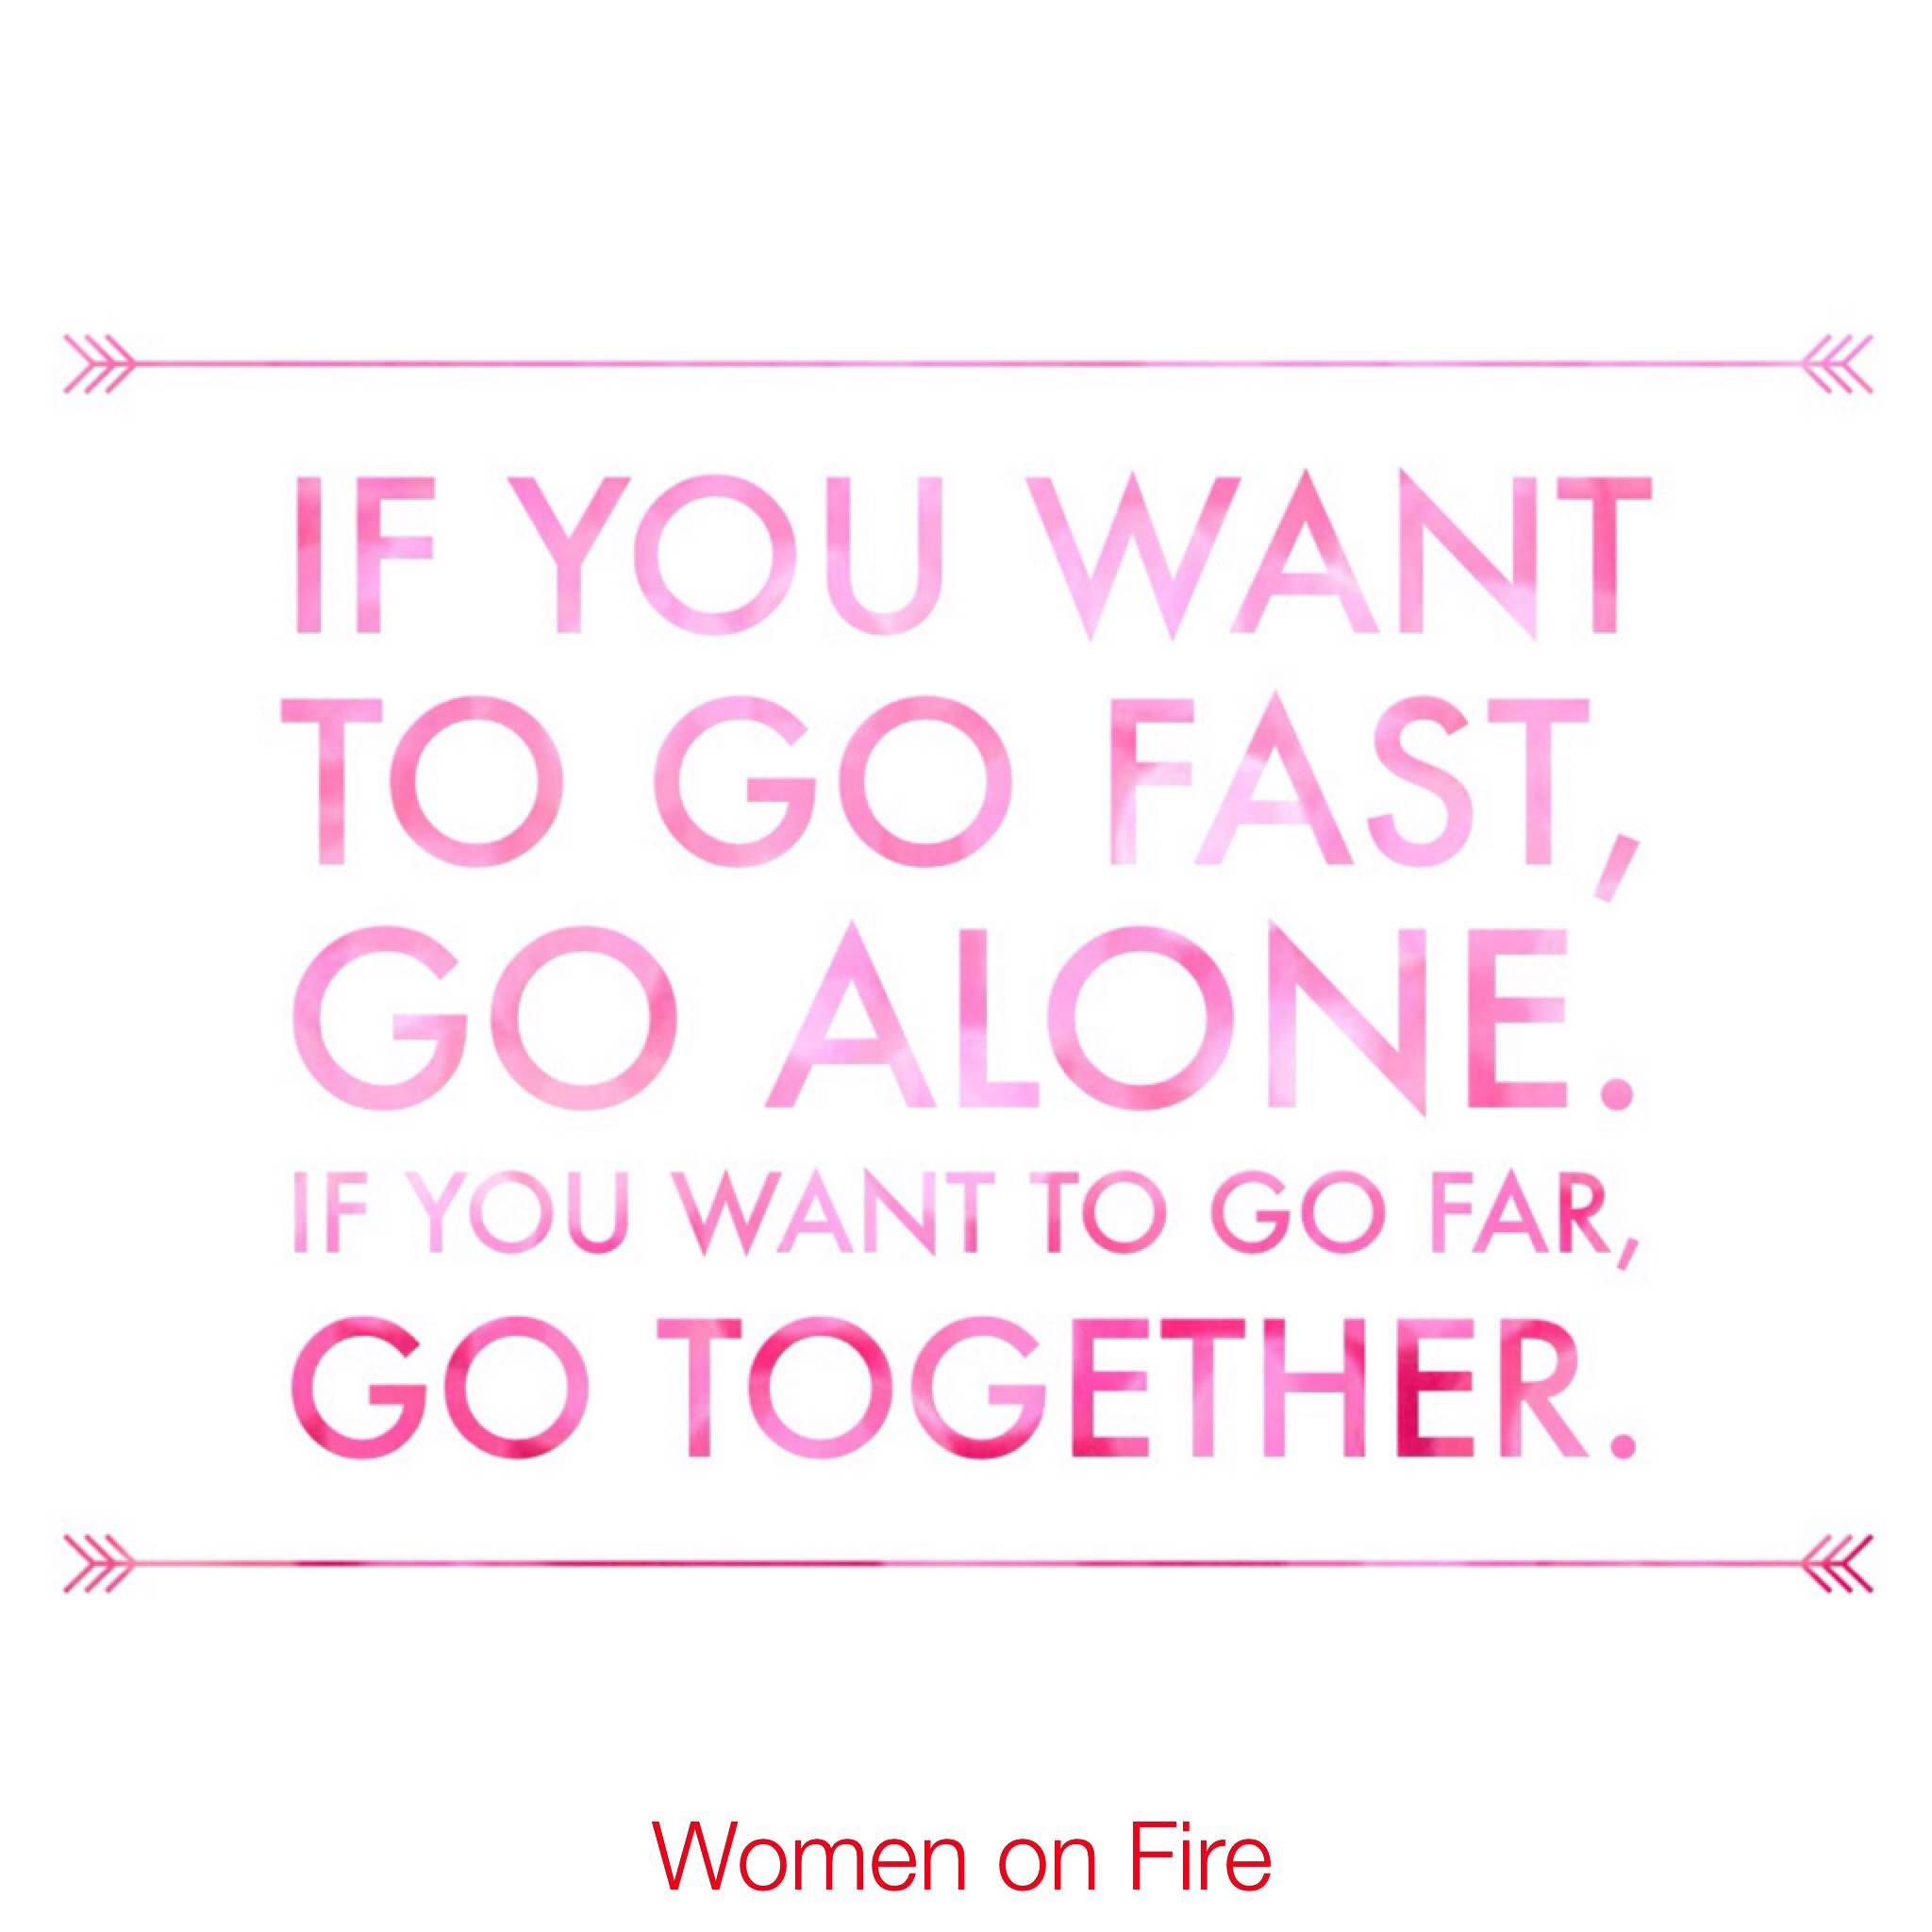 Inspiration from Women on Fire